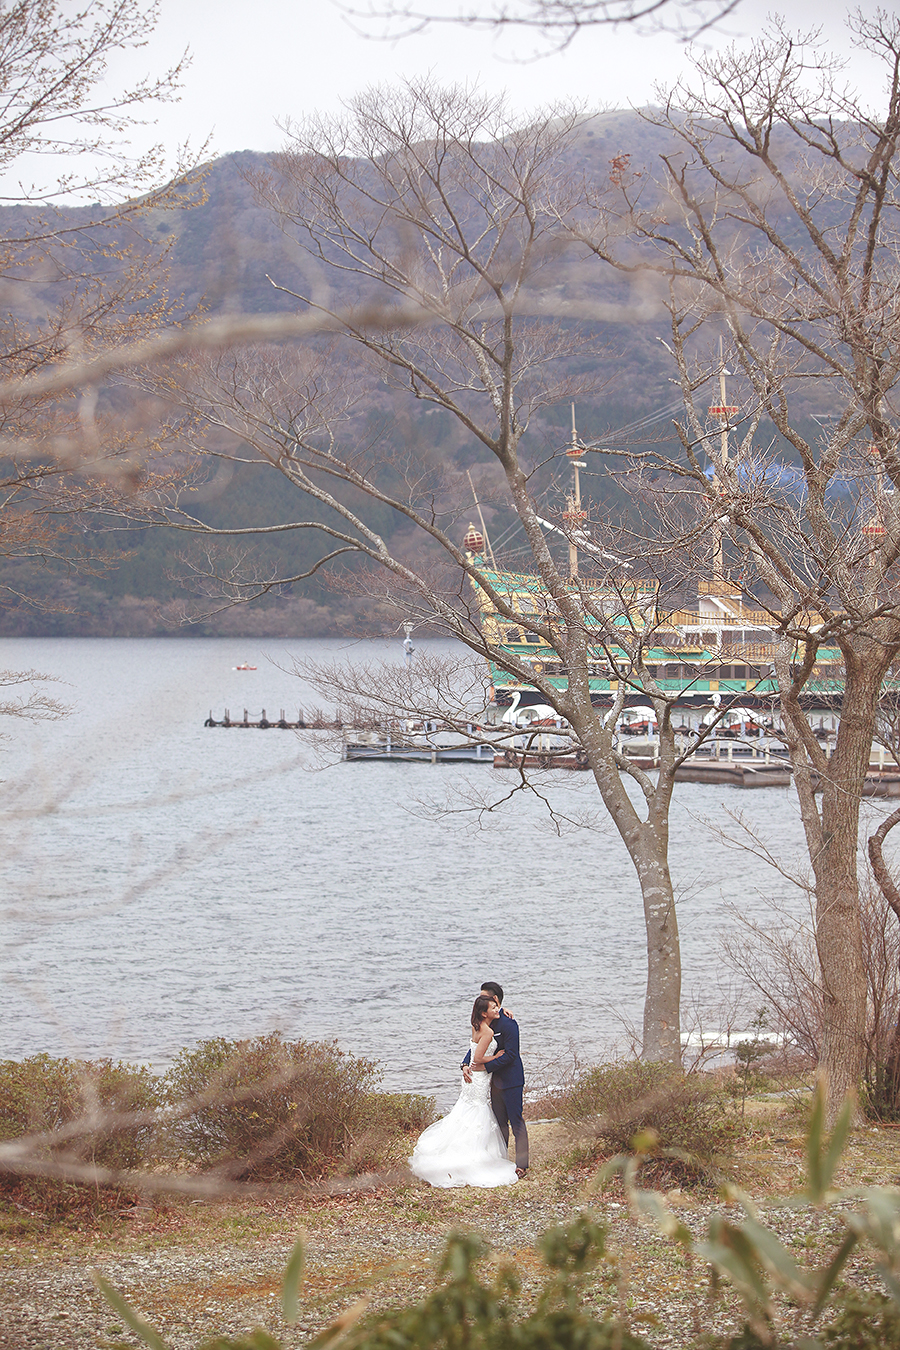 tokyo hakone japan spring sakura . engagement wedding photography by kurt ahs . ns + eu . 0374.jpg